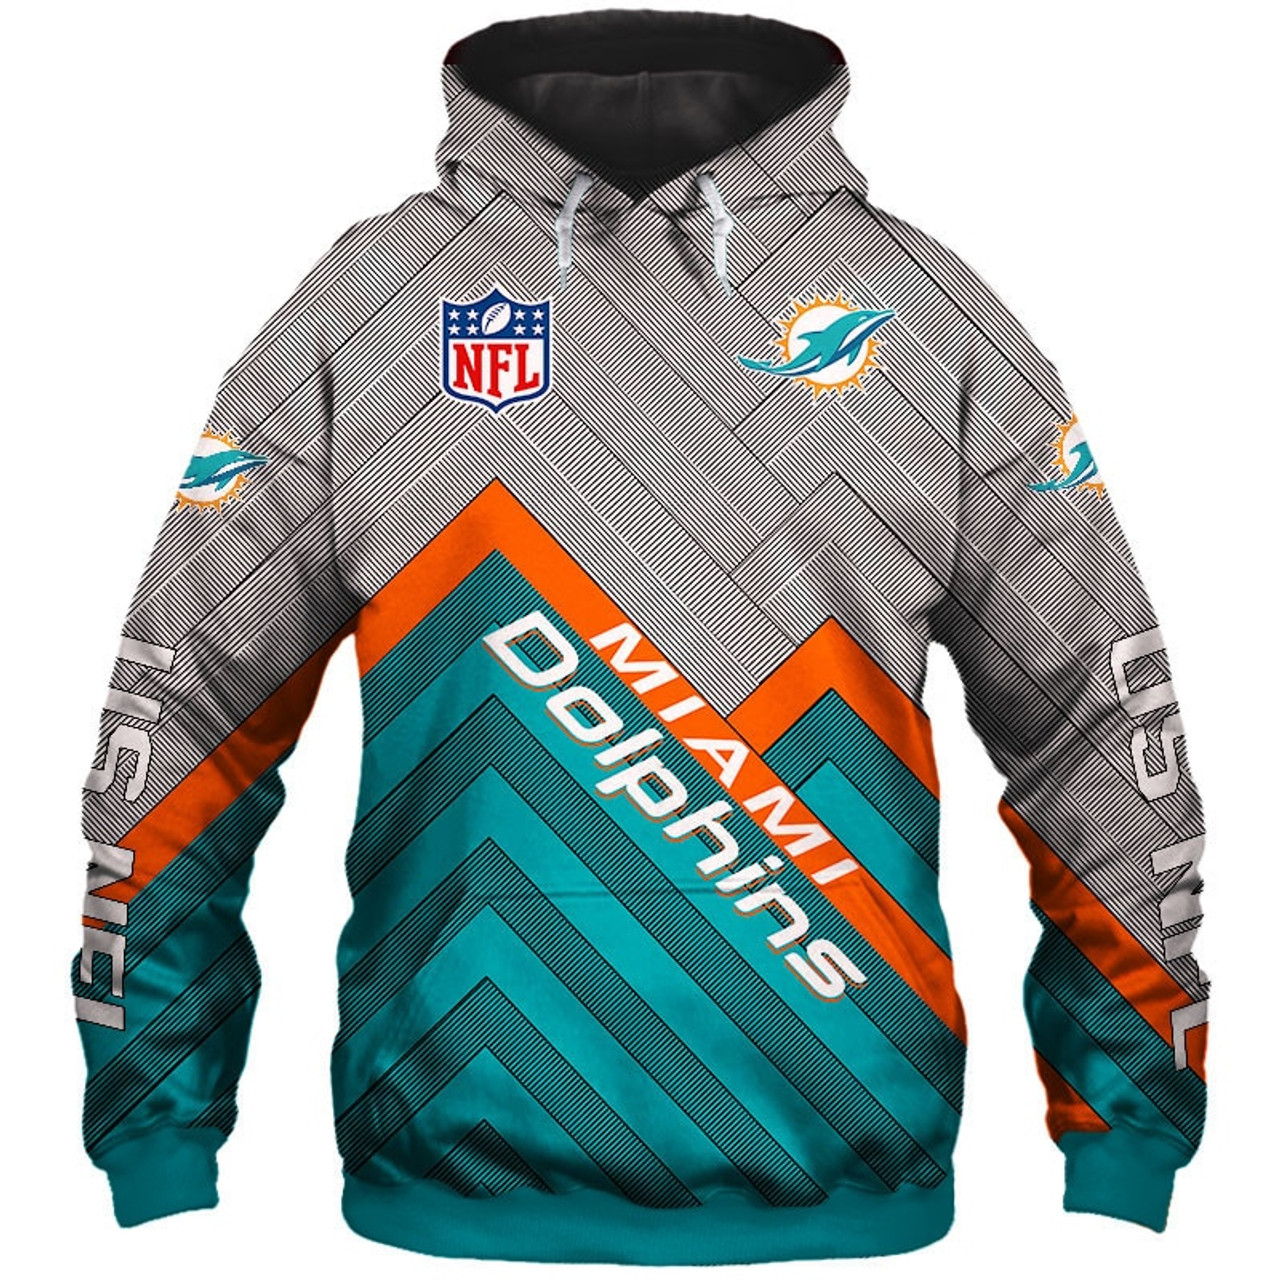 **(NEW-OFFICIAL-N.F.L.MIAMI-DOLPHINS-PULLOVER-HOODIES/3D-CUSTOM-DOLPHINS-LOGOS & OFFICIAL-DOLPHINS-TEAM-COLORS/NICE-3D-DETAILED-GRAPHIC-PRINTED-DOUBLE-SIDED/ALL-OVER-ENTIRE-HOODIE-PRINTED-DESIGN/TRENDY-WARM-PREMIUM-N.F.L.DOLPHINS-PULLOVER-HOODIES)**